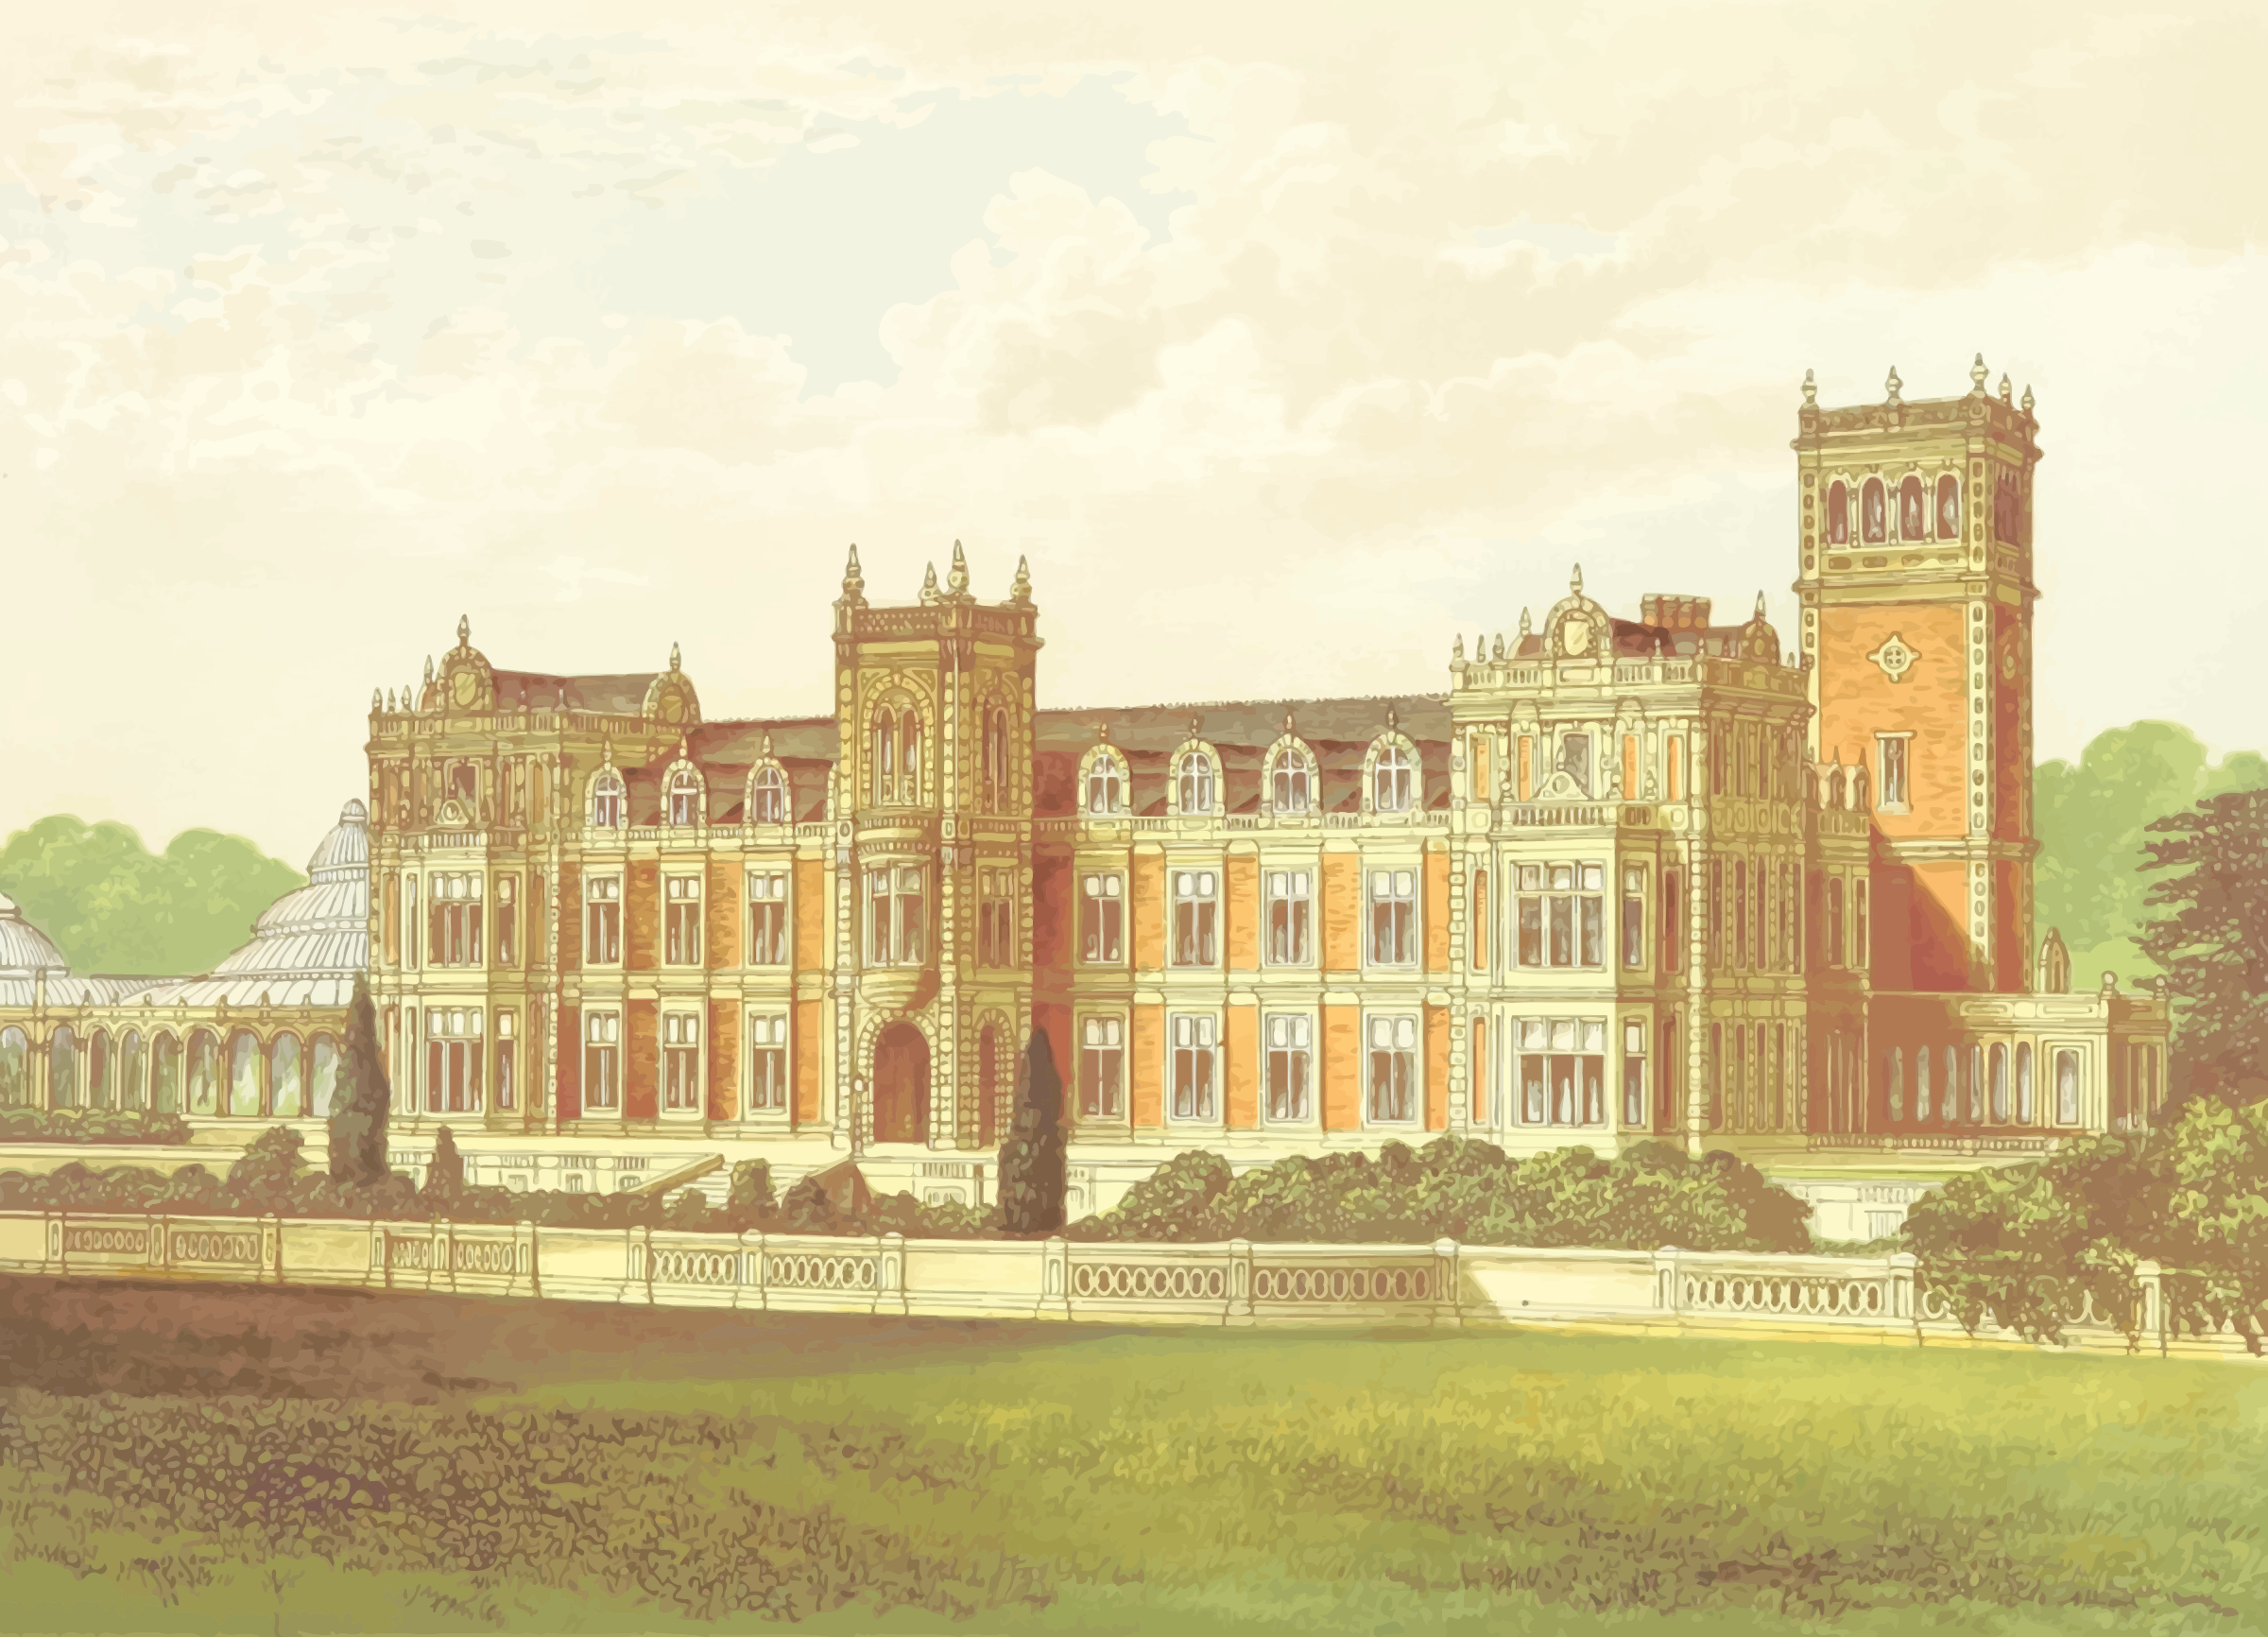 Somerleyton by Firkin